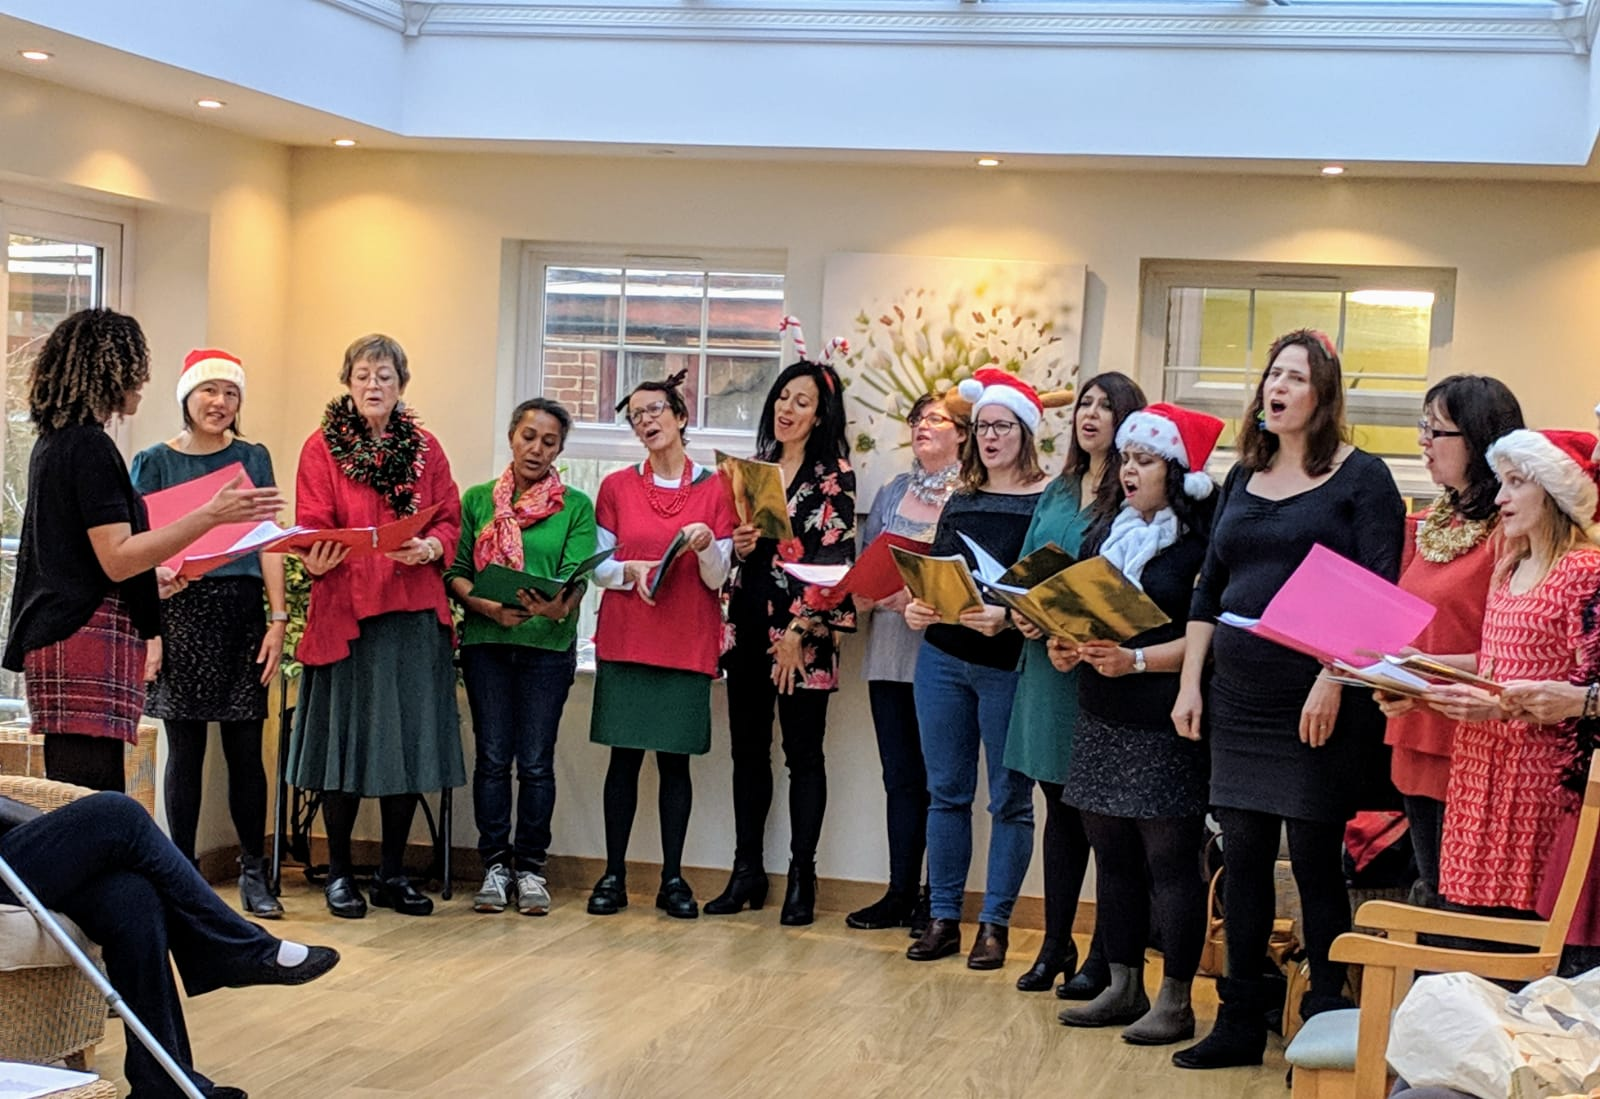 Singing for the Residents of Dalemead Residential Care Home